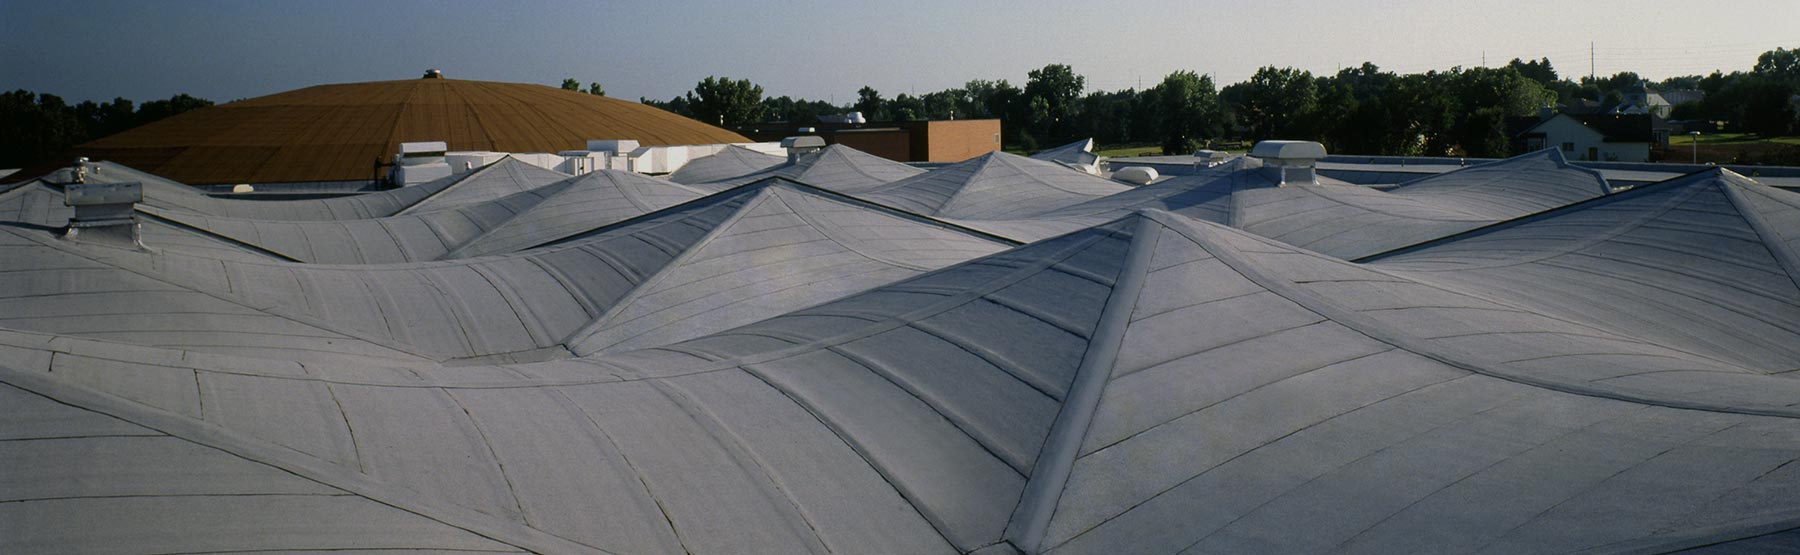 commercial-roof-where-to-buy